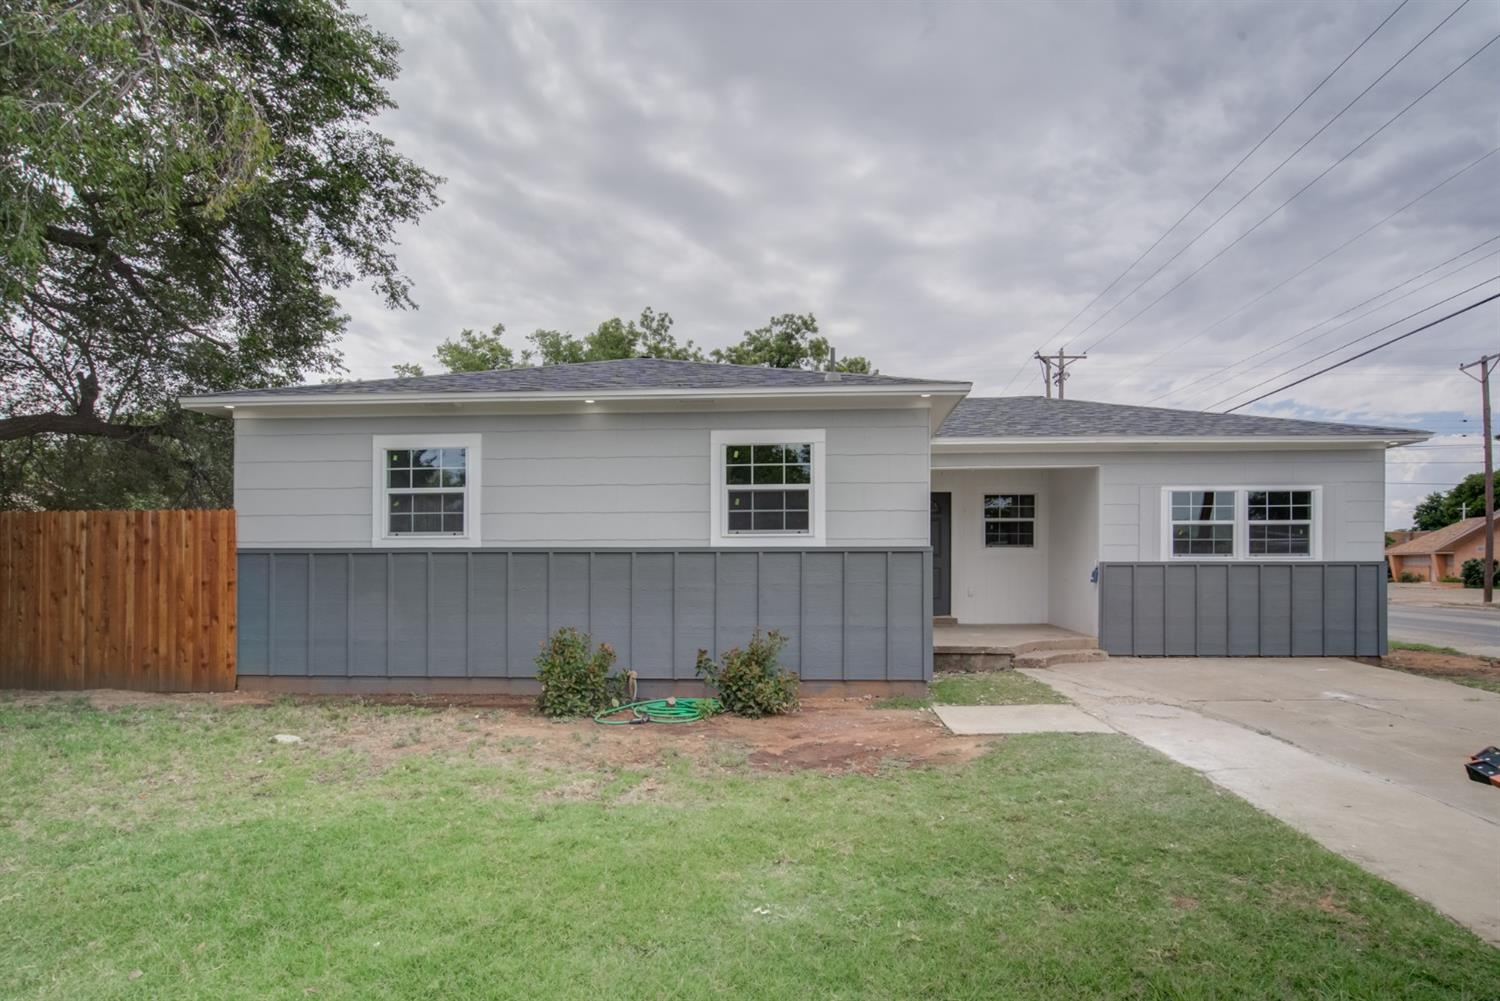 2019 48th Street, Lubbock in Lubbock County, TX 79412 Home for Sale